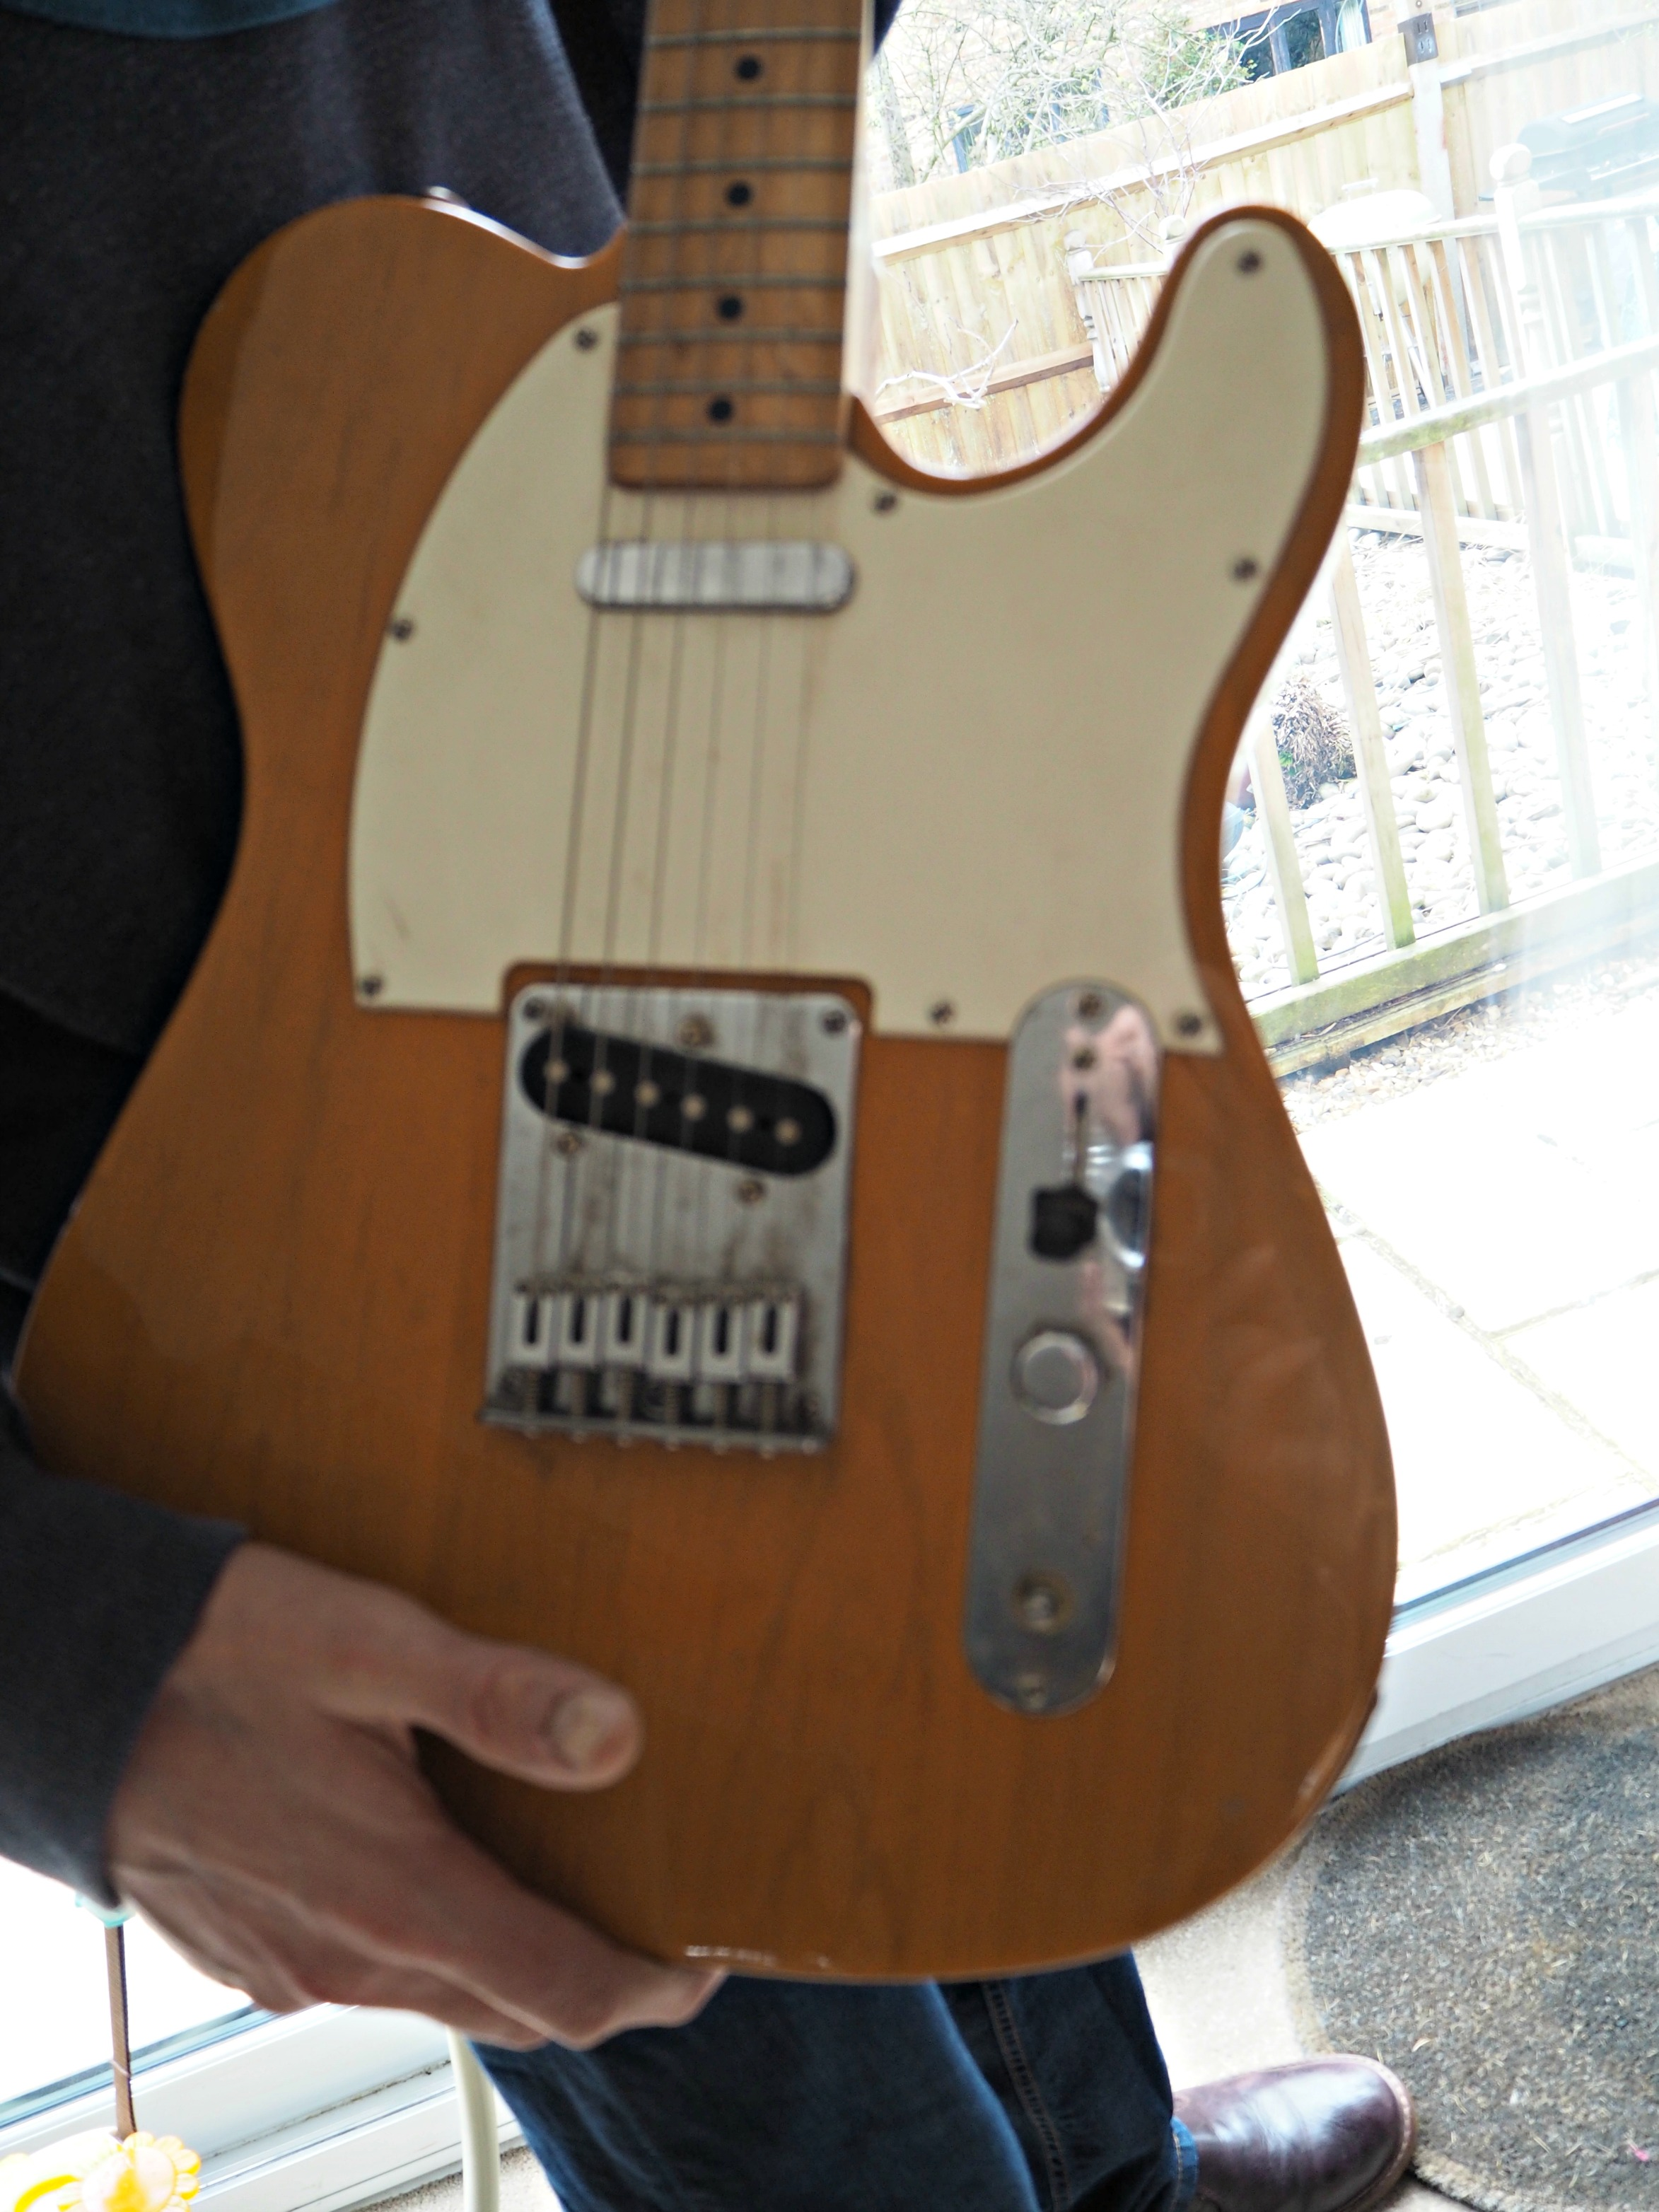 Renovating a Squier Telecaster (Part 1) - before picture of guitar